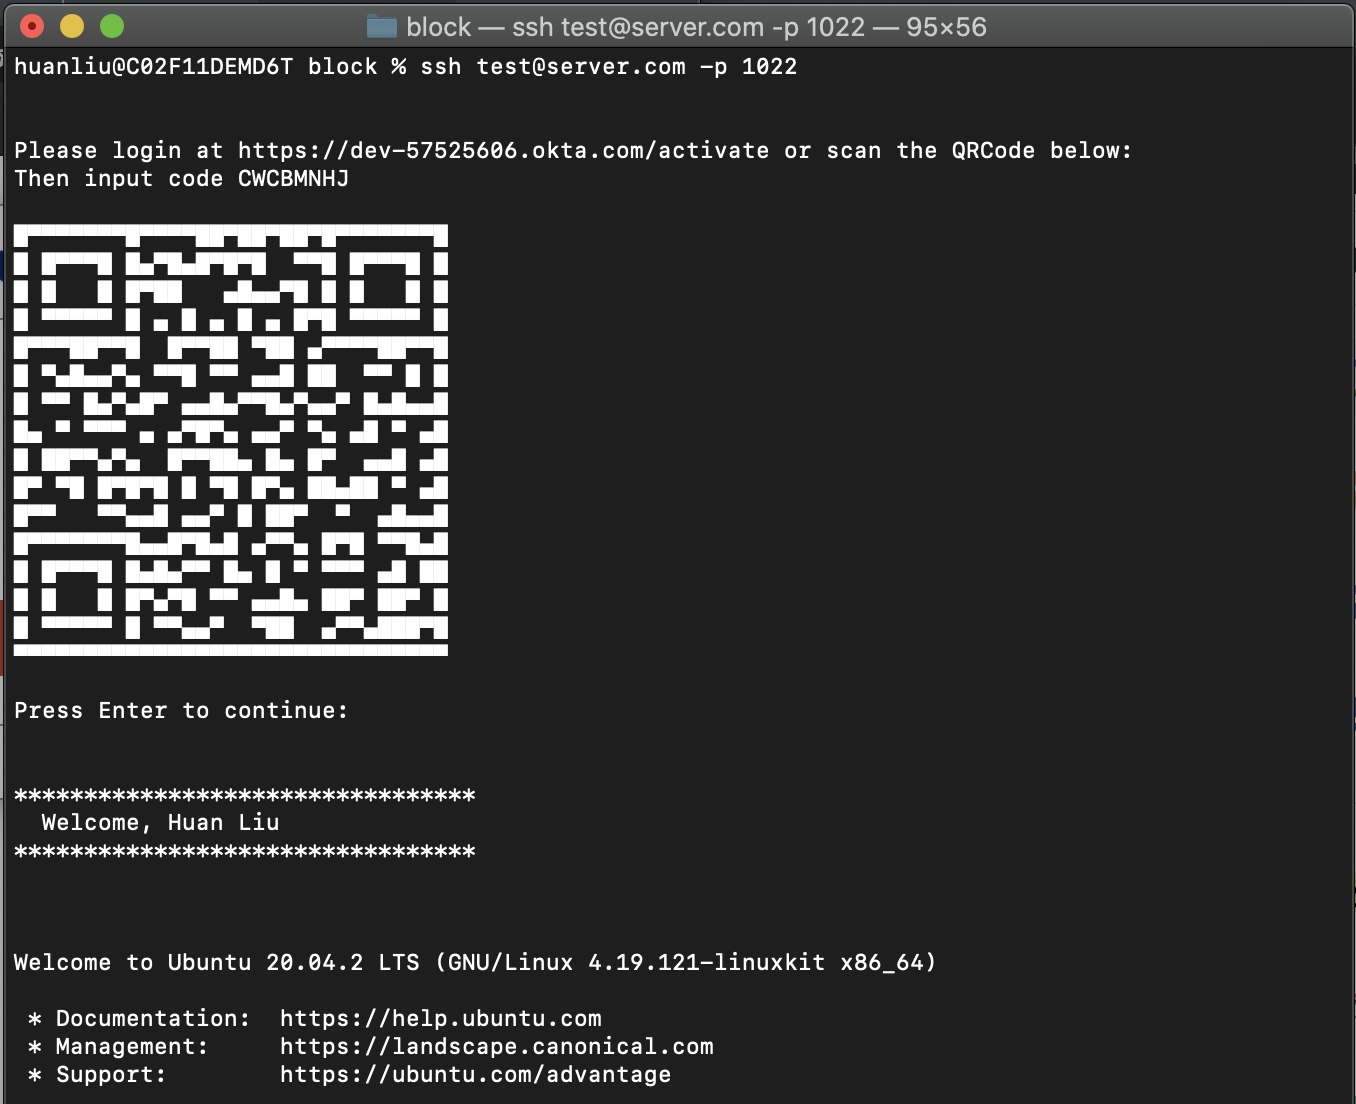 ssh login experience using device flow